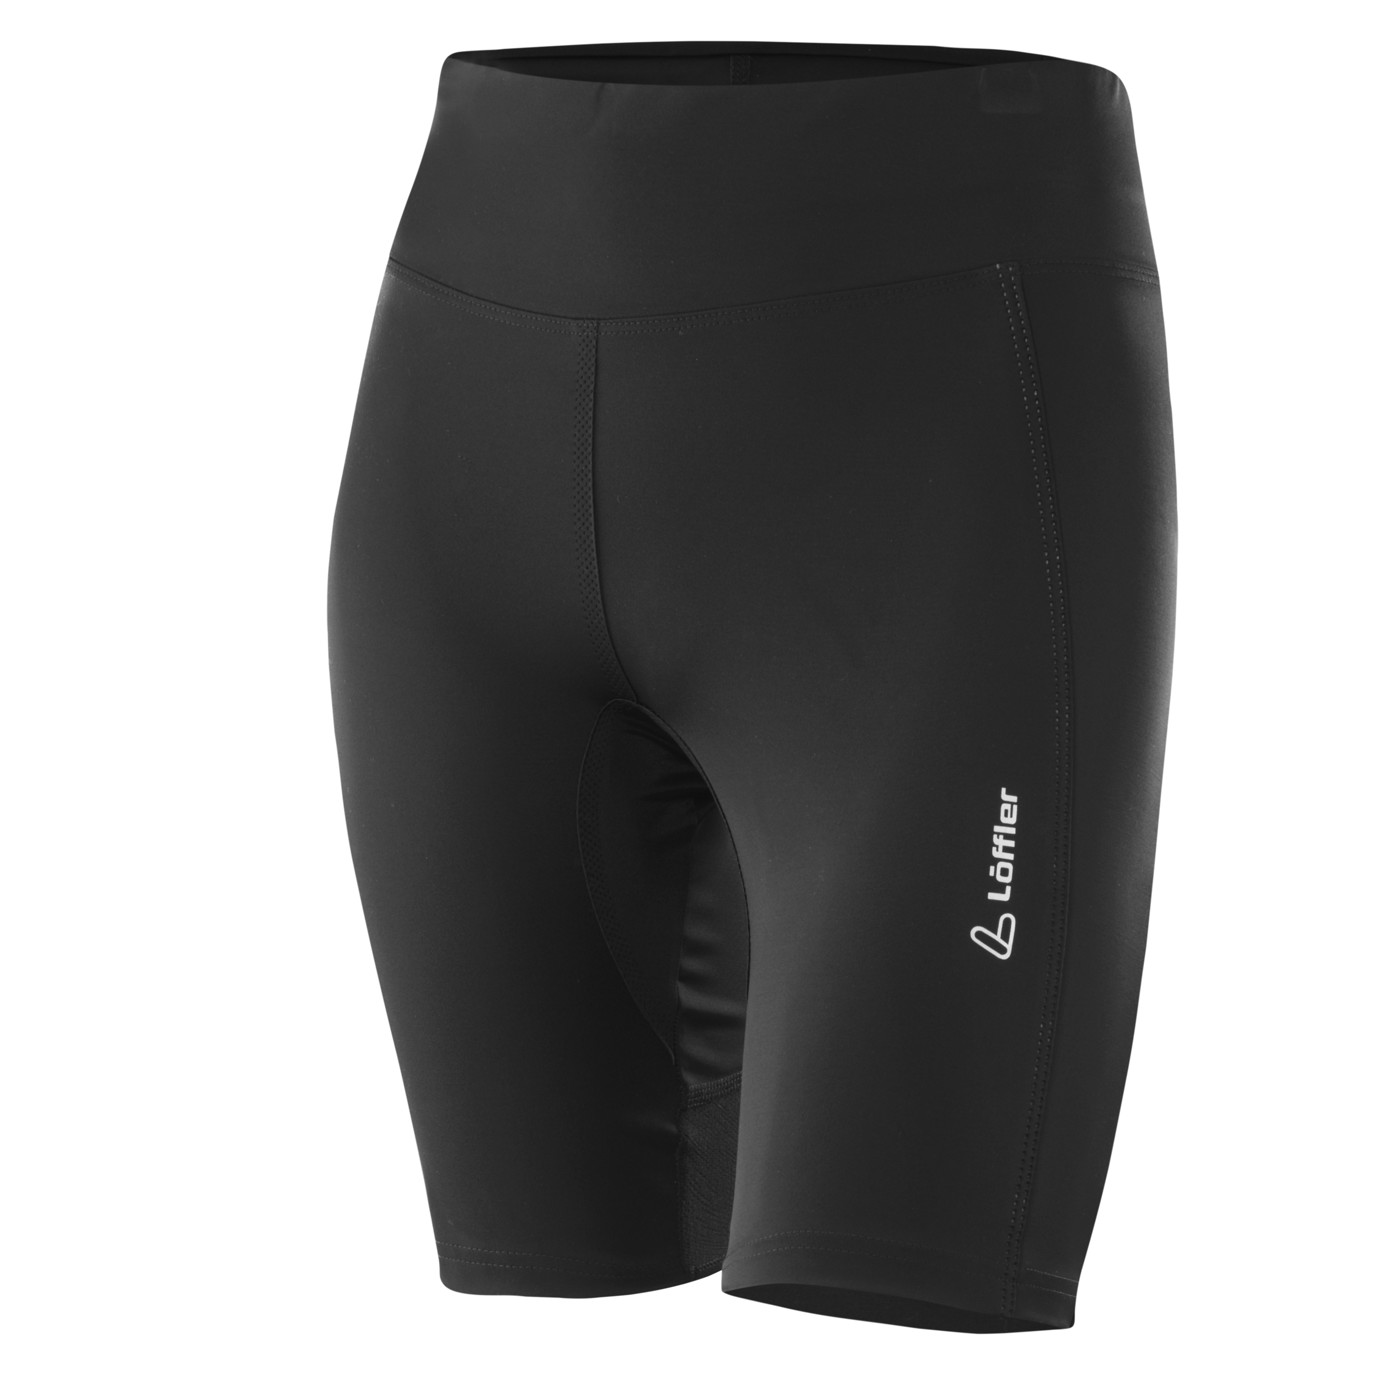 LÖFFLER W SHORT TIGHTS HOTBOND RF - Damen